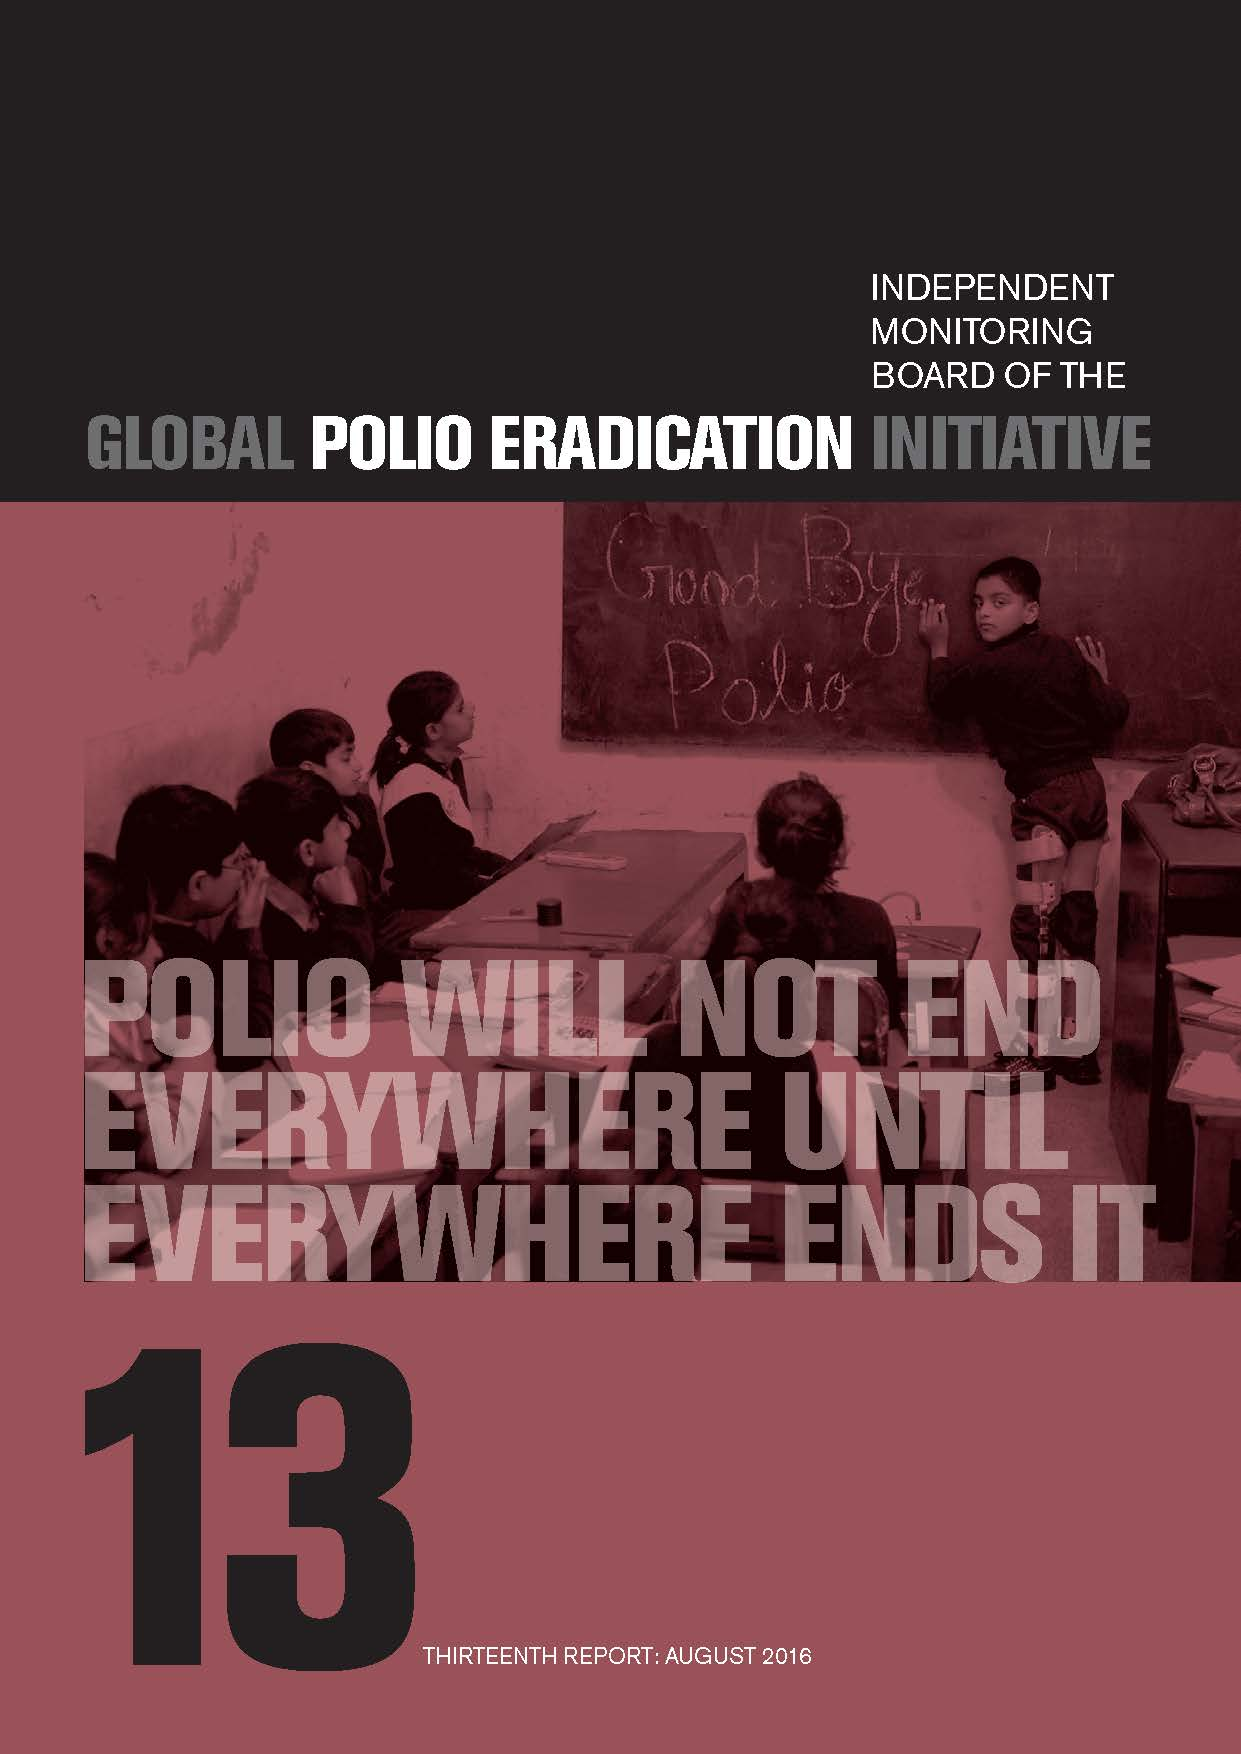 gpei global polio eradication initiative report